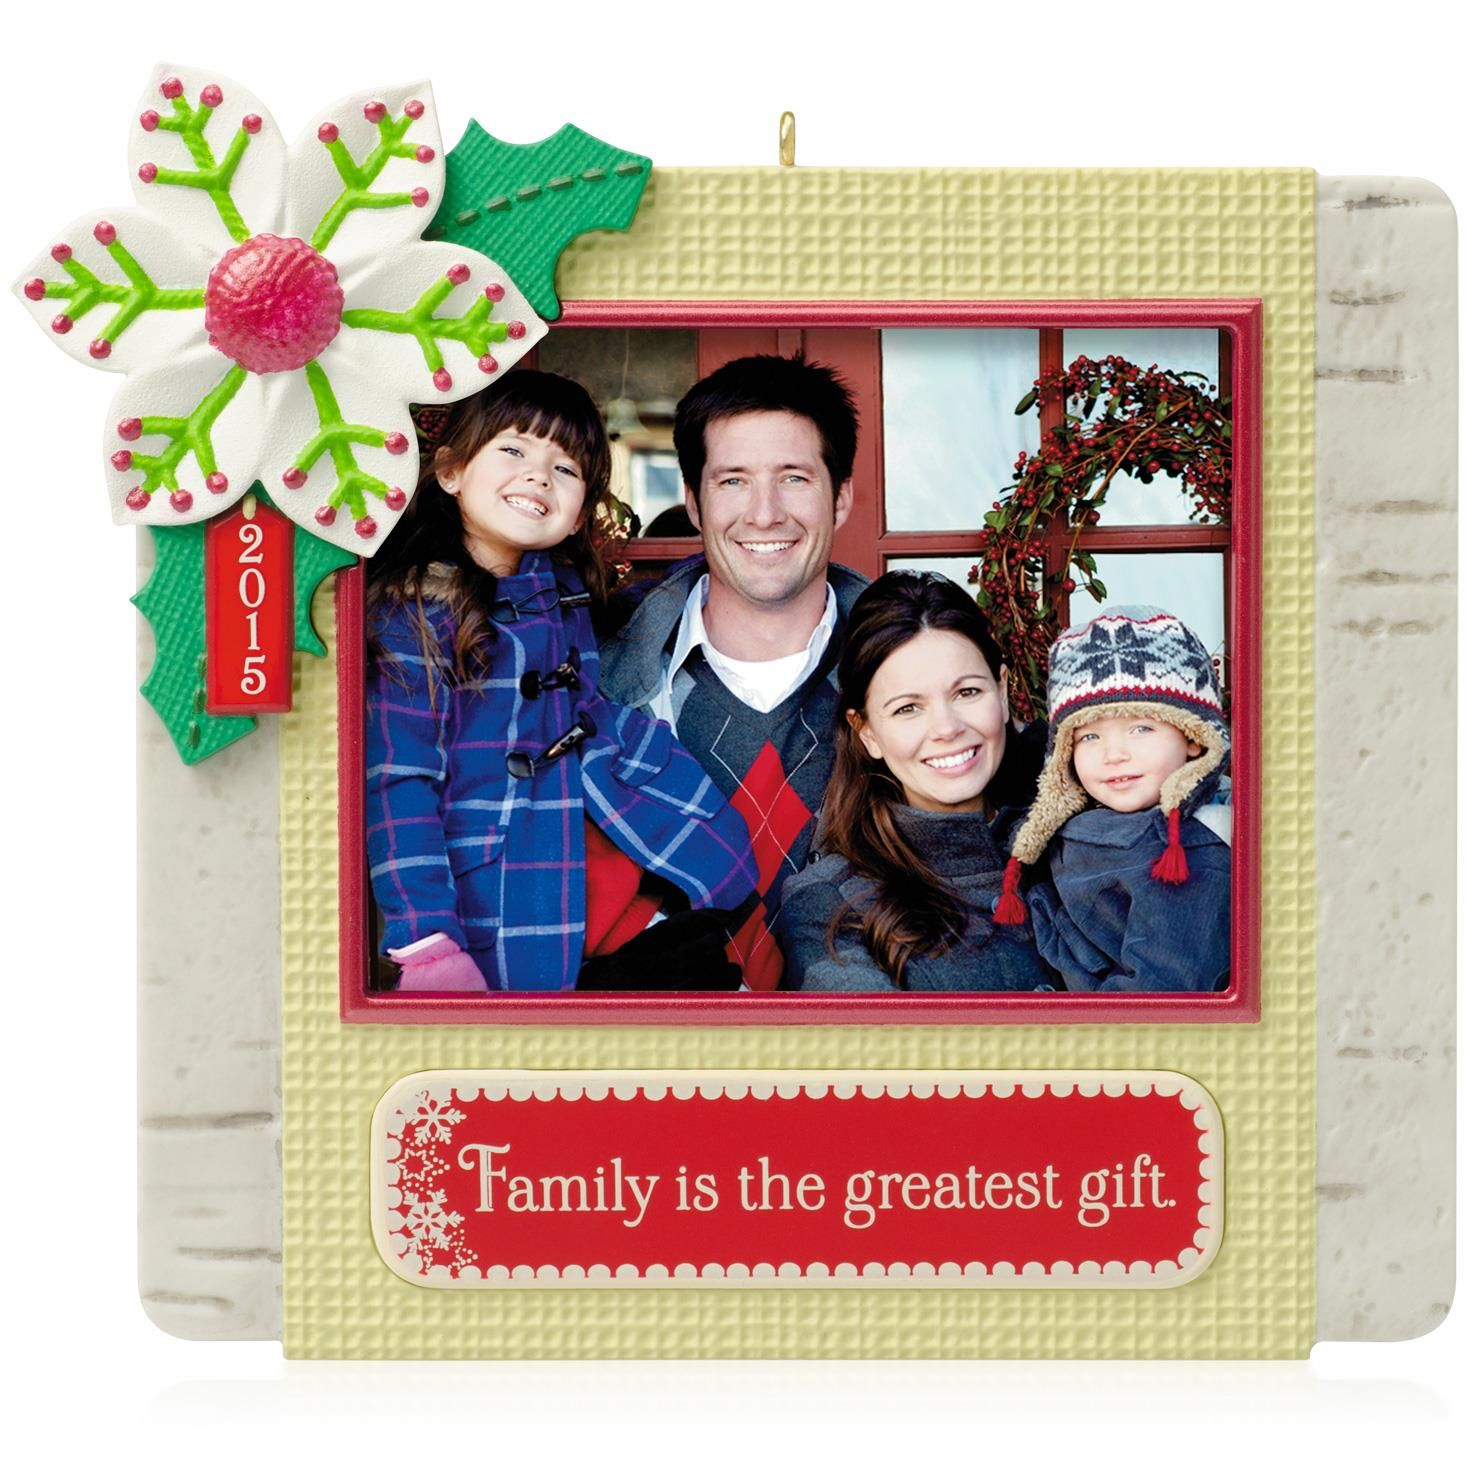 2015 our family photo holder hallmark keepsake ornament